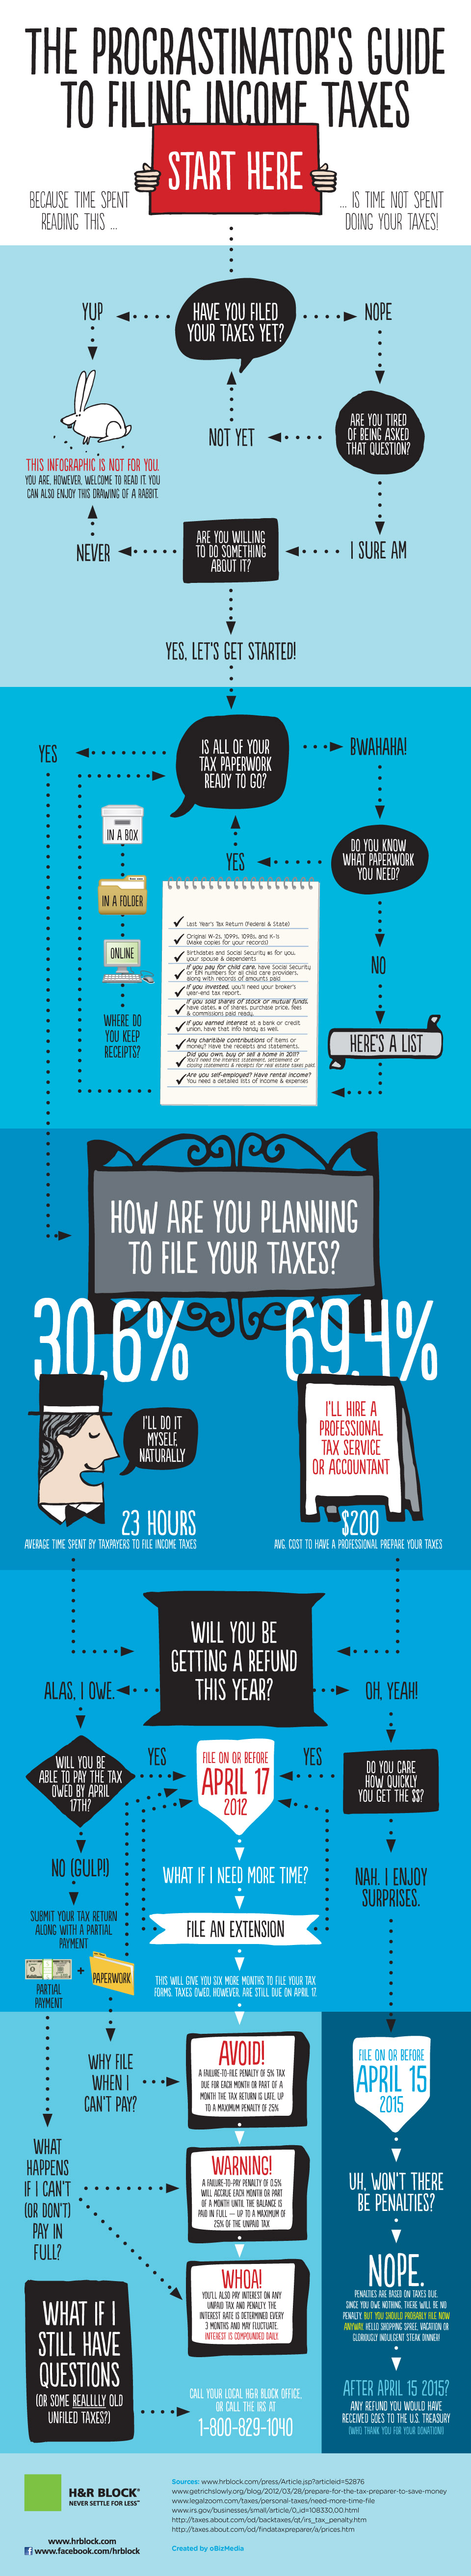 17 Best Images About Tax Humor On Pinterest The Irs, Finance And Irs Tax 17